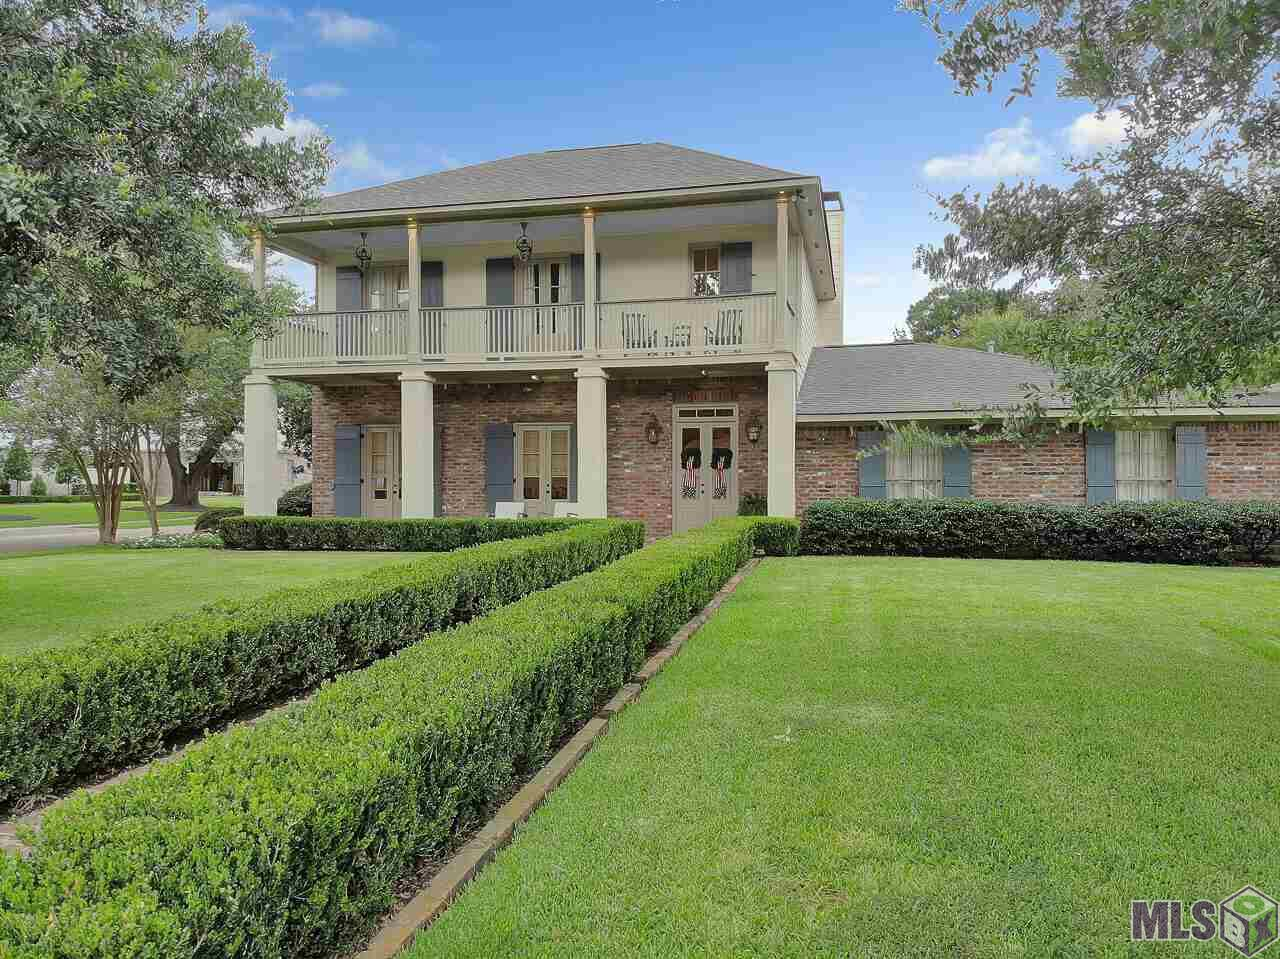 Welcome to Southern Living at its finest!!!  This exquisite 5BR/4.5BA has all the southern charm, elegance and amenities of your dream home.  Home was originally built in 1955 but has been transformed to true perfection.  This home has heart of pine floors, Old St. Louis brick, antique pine beams, gourmet kitchen, living room, formal dining, breakfast area,  powder room, walk in laundry room with sink, kids den and so much more. The elegant kitchen was updated with 3cm Quartzite counter tops, Marble back splash, custom cabinets, large island, Thermadore built in refrigerator, double dishwashers, 48 inch DCS grill with griddle, a total of 3 ovens, warming drawer and walk in pantry.  Living room has antique beams, brick gas fireplace, Old St. Louis brick floors and spectacular views of the backyard, pool and guesthouse. Upstairs you will find the spacious master bedroom, master bathroom and his/her closets.  Additional guest bedroom upstairs with private in-suite bathroom.  Downstairs has three guest bedrooms all with heart of pine wood floors and 2 full bathrooms.  In 2013 the pool and guest house were added.  Every details of perfection from Pennsylvania Blue Stone, Old St. Louis brick accents, Gunite Pool along with a 290 sq. ft. gazebo with outdoor kitchen, fire pit and pizza oven. The guest house is 645 sq. ft.,  with tumbled edge travertine, antique beams, full living room, separate bedroom , bathroom and kitchen.  In 2008 a car lover's dream garage was added.  Yes, you can park  a total of  7 cars in covered, air conditioned space.  Built in work bench with storage and outside restroom make this the a car lover's dream. Finally, home has exterior lighting and irrigation throughout. See attached amenities sheet for more details.